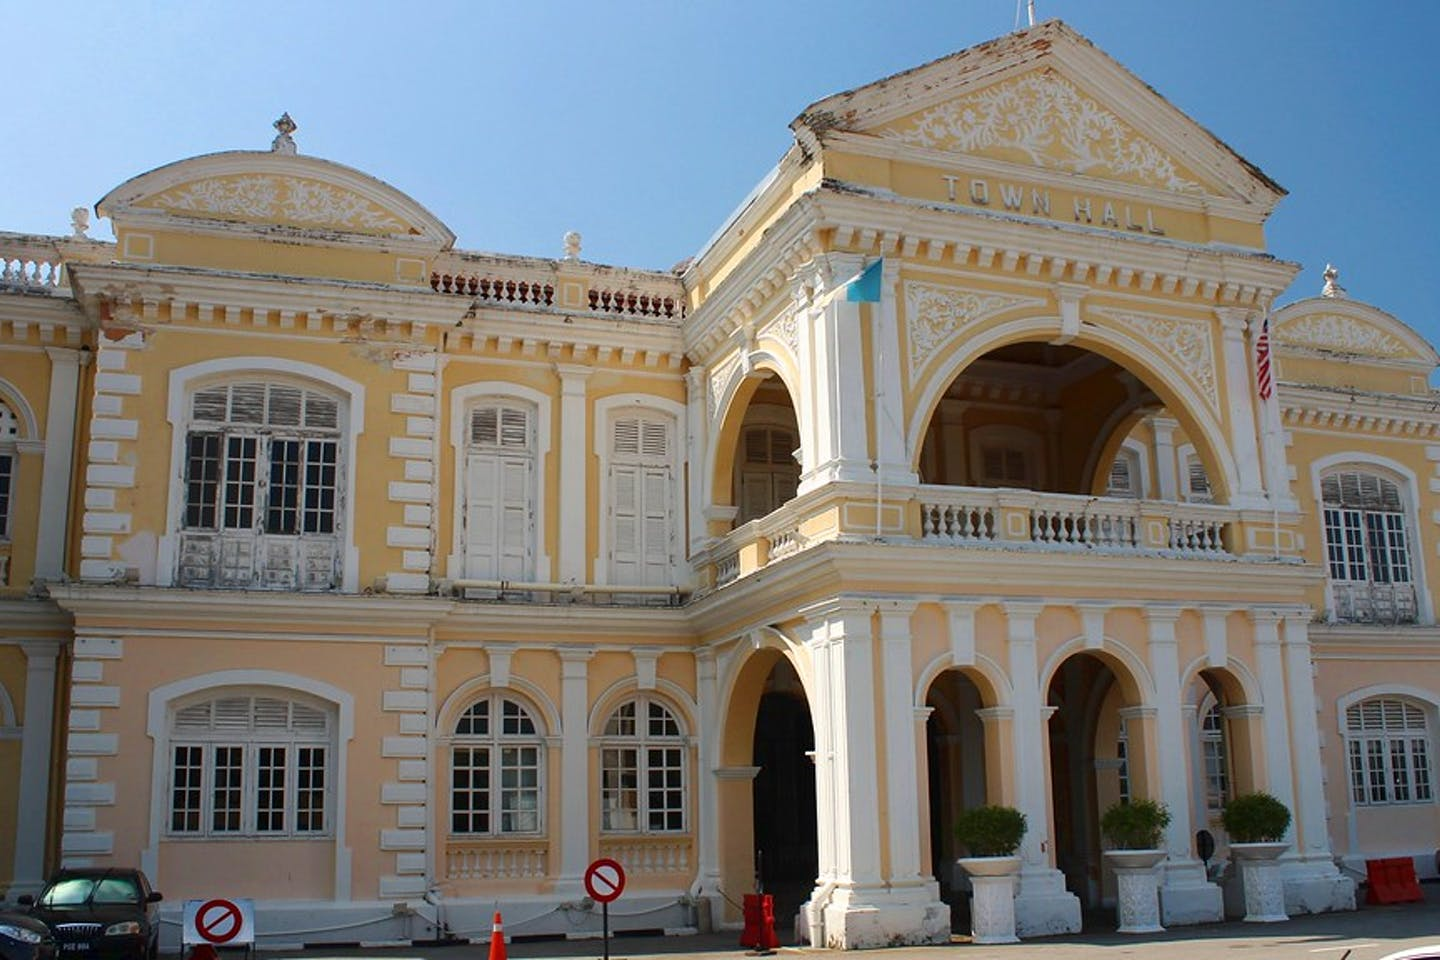 Town Hall in George Town Malaysia